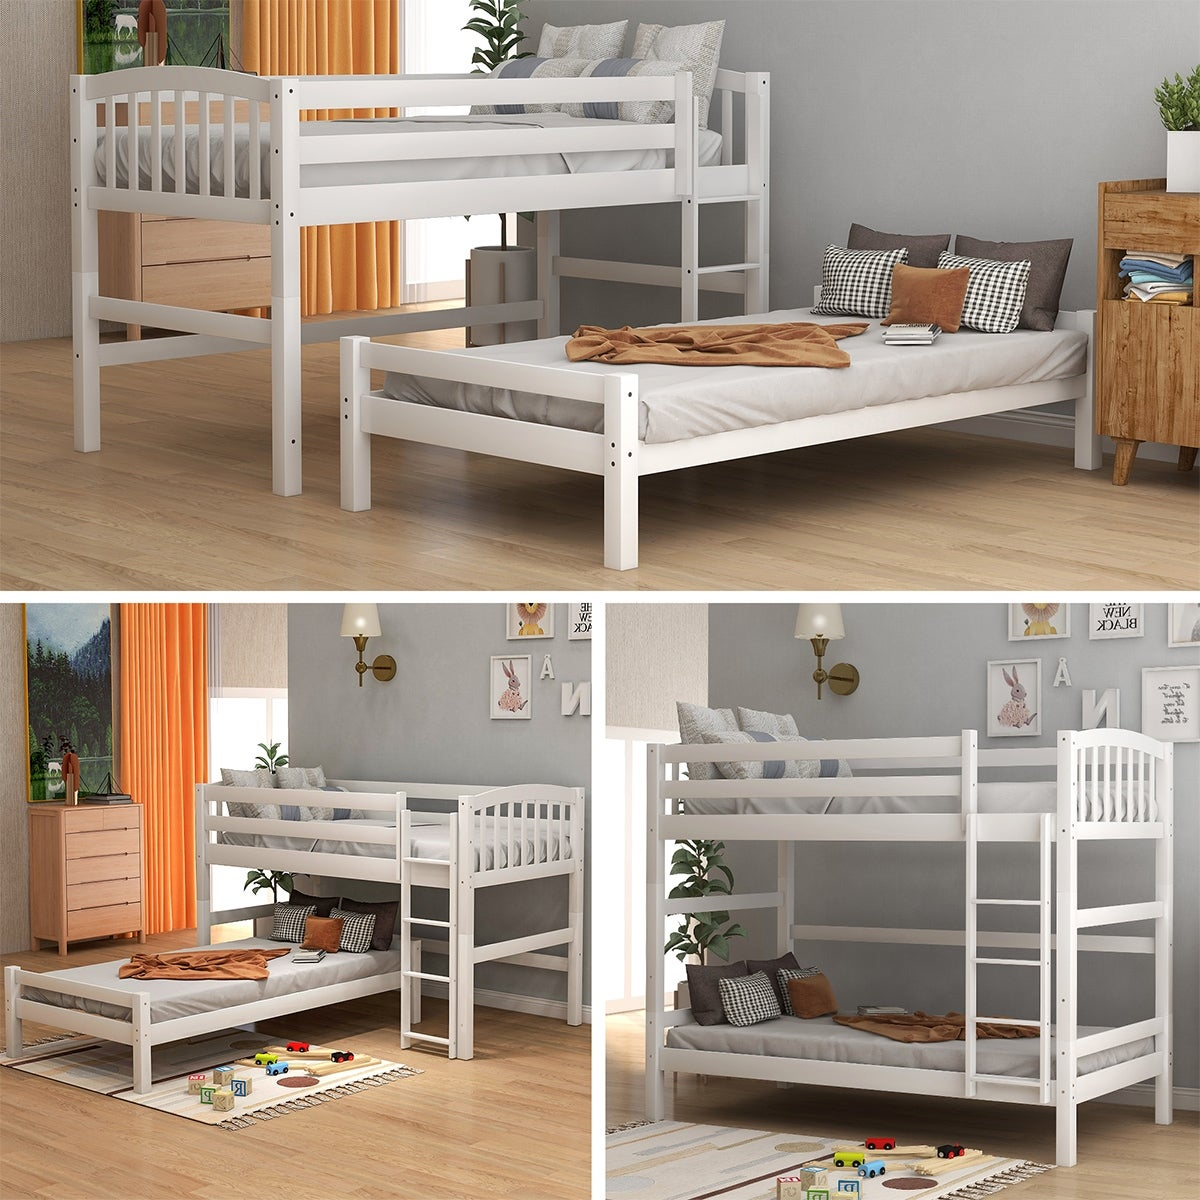 Merax Twin Over Twin Bunk Bed Twin Size Loft Bed On Sale Overstock 30897923